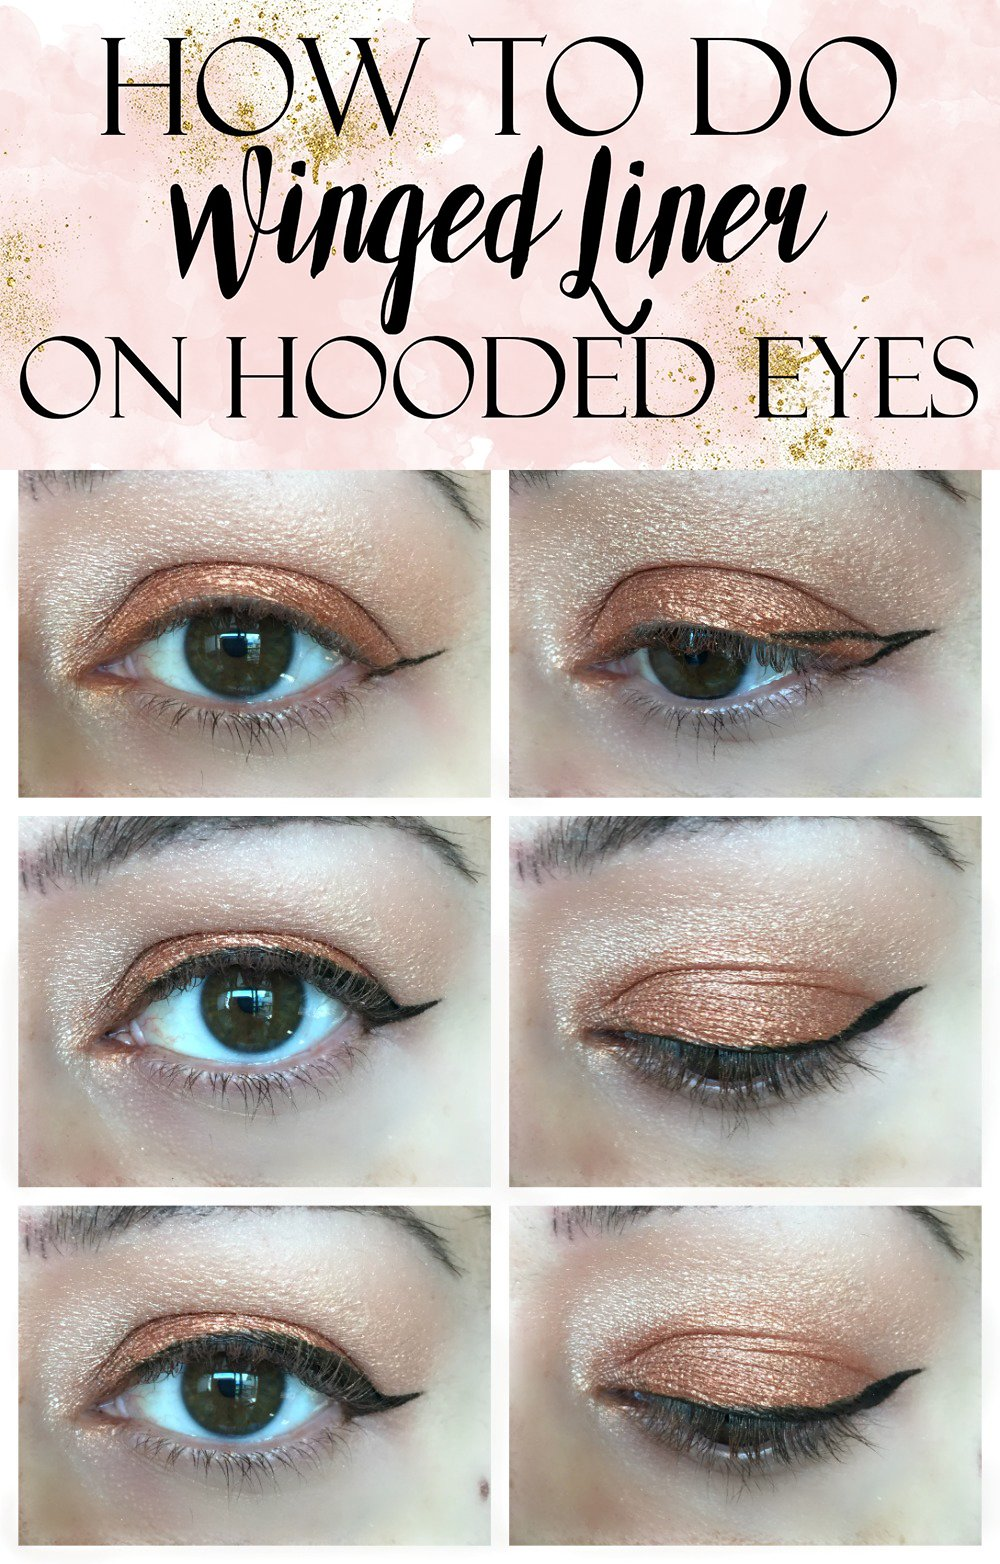 How to apply winged liner on hooded eyes tutorial easy winged eye liner tutorial for hooded eye lids baditri Image collections